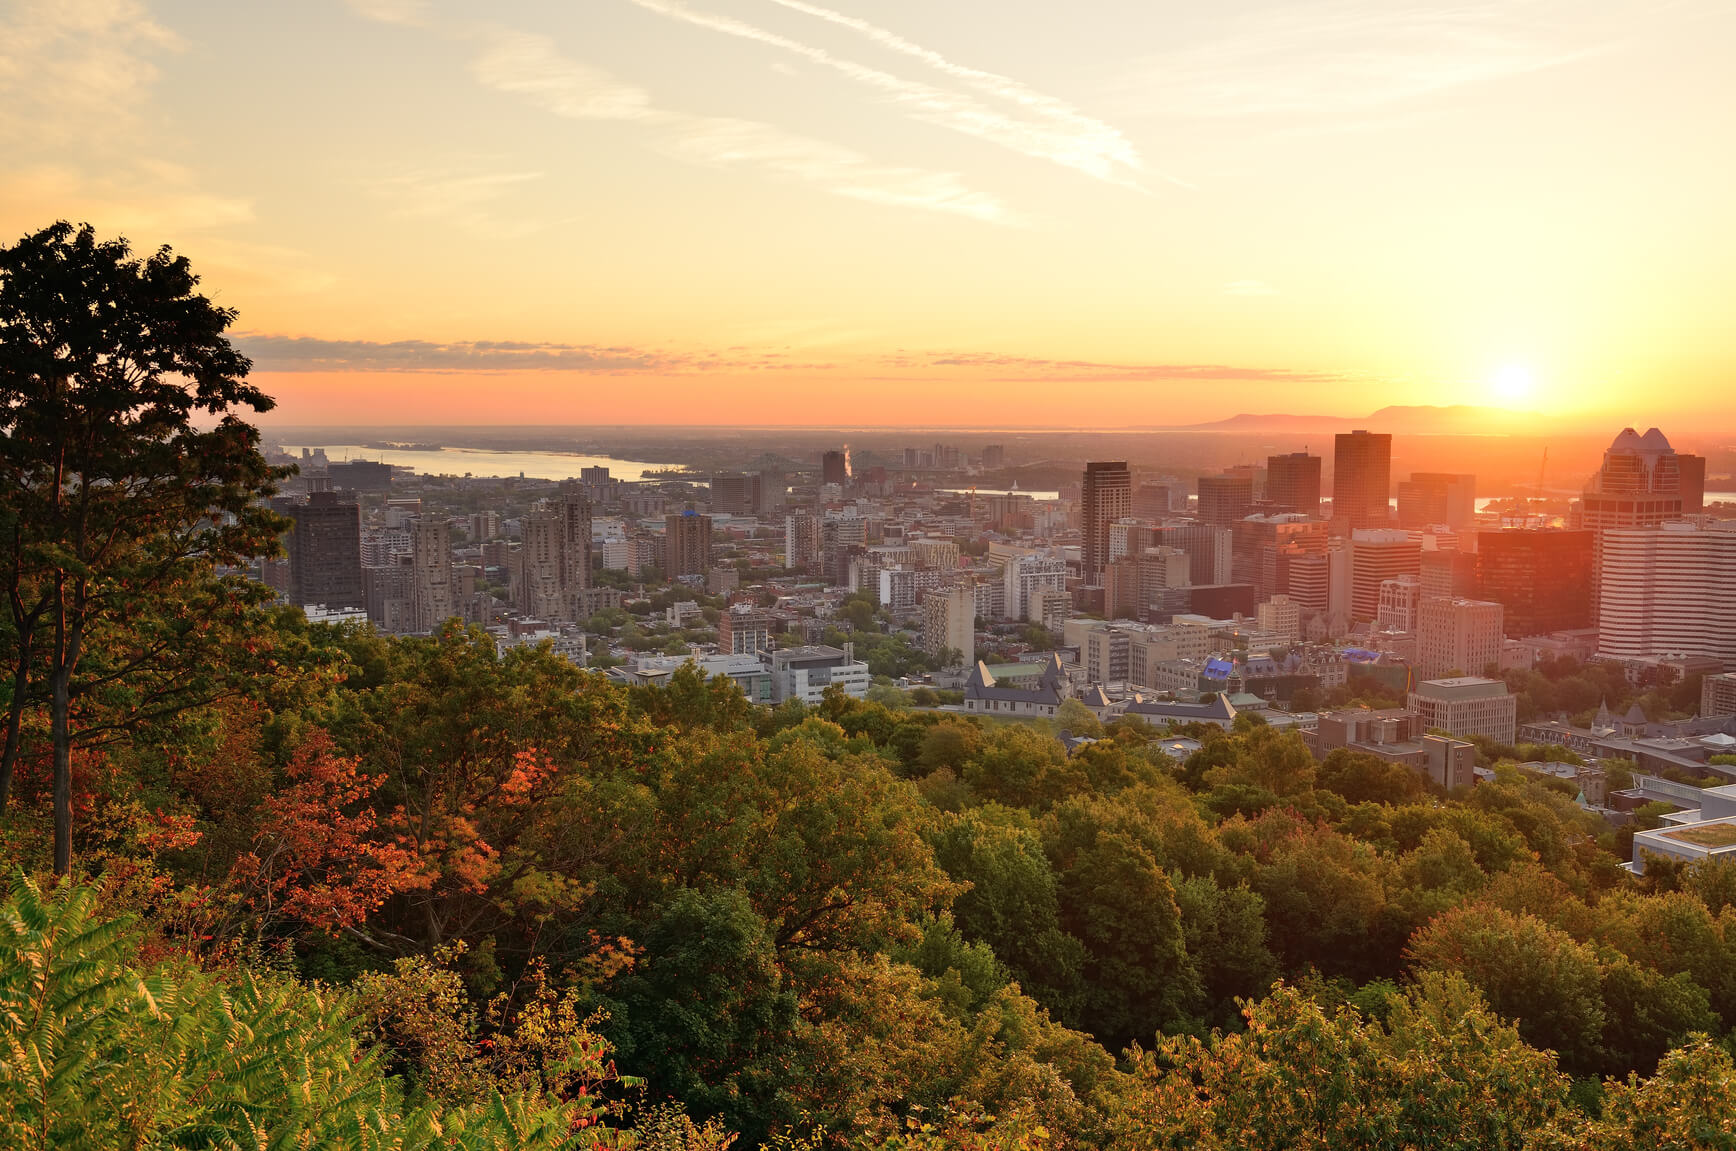 XMAS & NEW YEAR: Non-stop from San Francisco to Montreal, Canada for only $220 roundtrip (Oct-Apr dates)